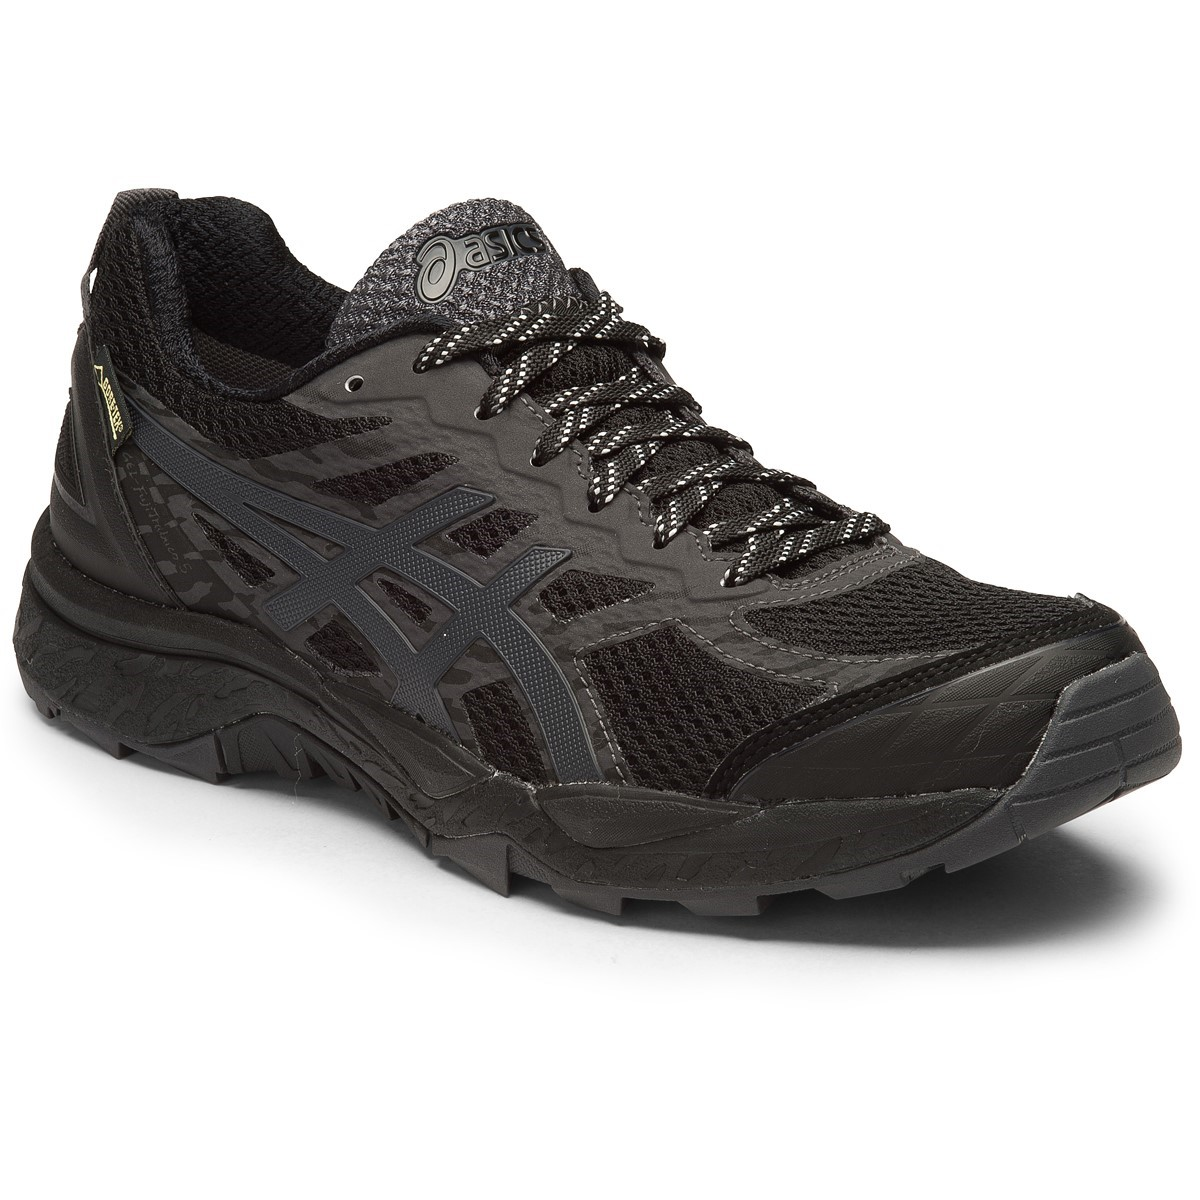 asics gel fuji trabuco 5 gtx womens trail running shoes black dark steel silver online. Black Bedroom Furniture Sets. Home Design Ideas